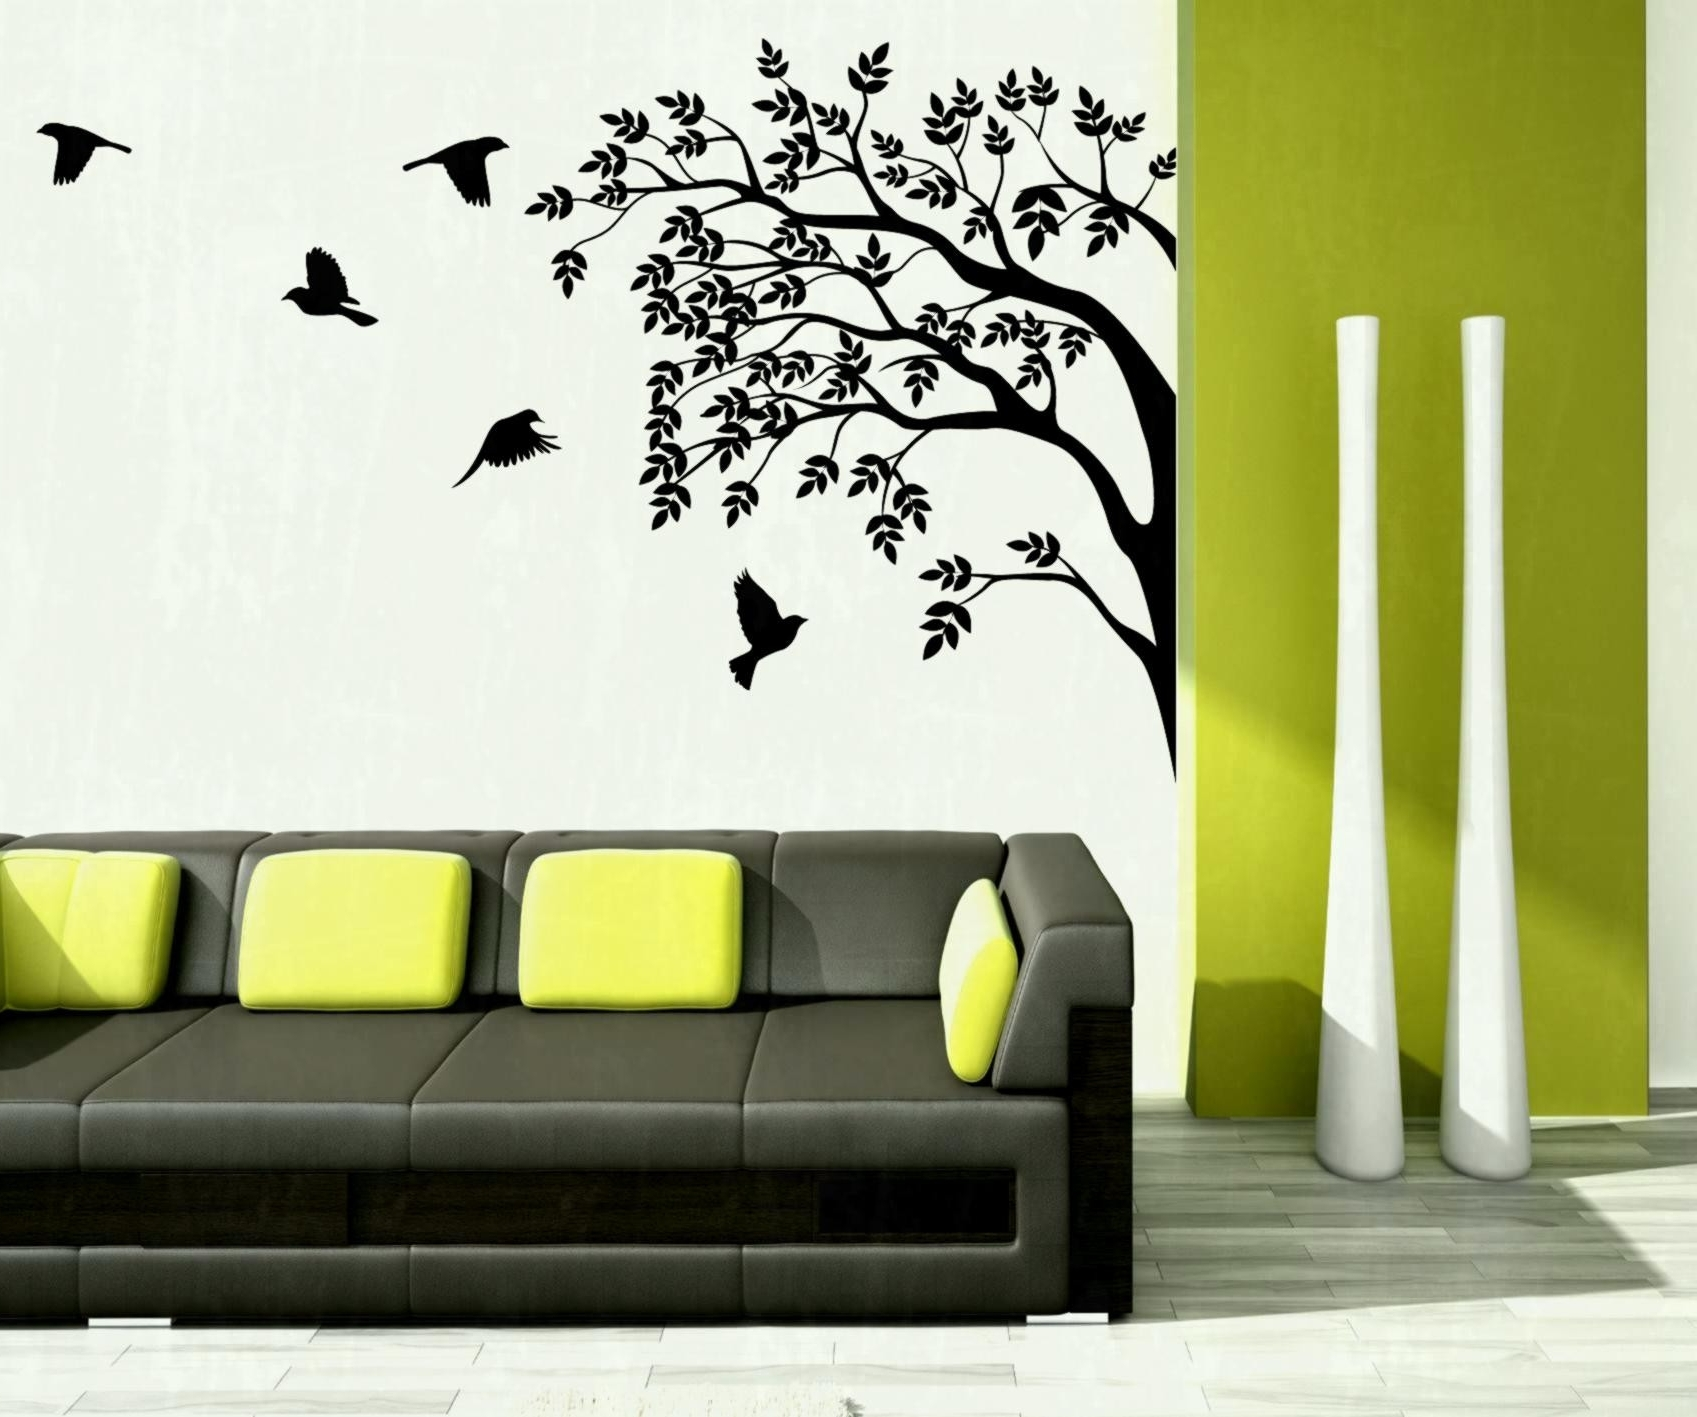 Recent Exclusive Ideas Unusual Wall Art Ishleparkcom 13 – Decorating Ideas Within Unusual Wall Art (View 17 of 20)